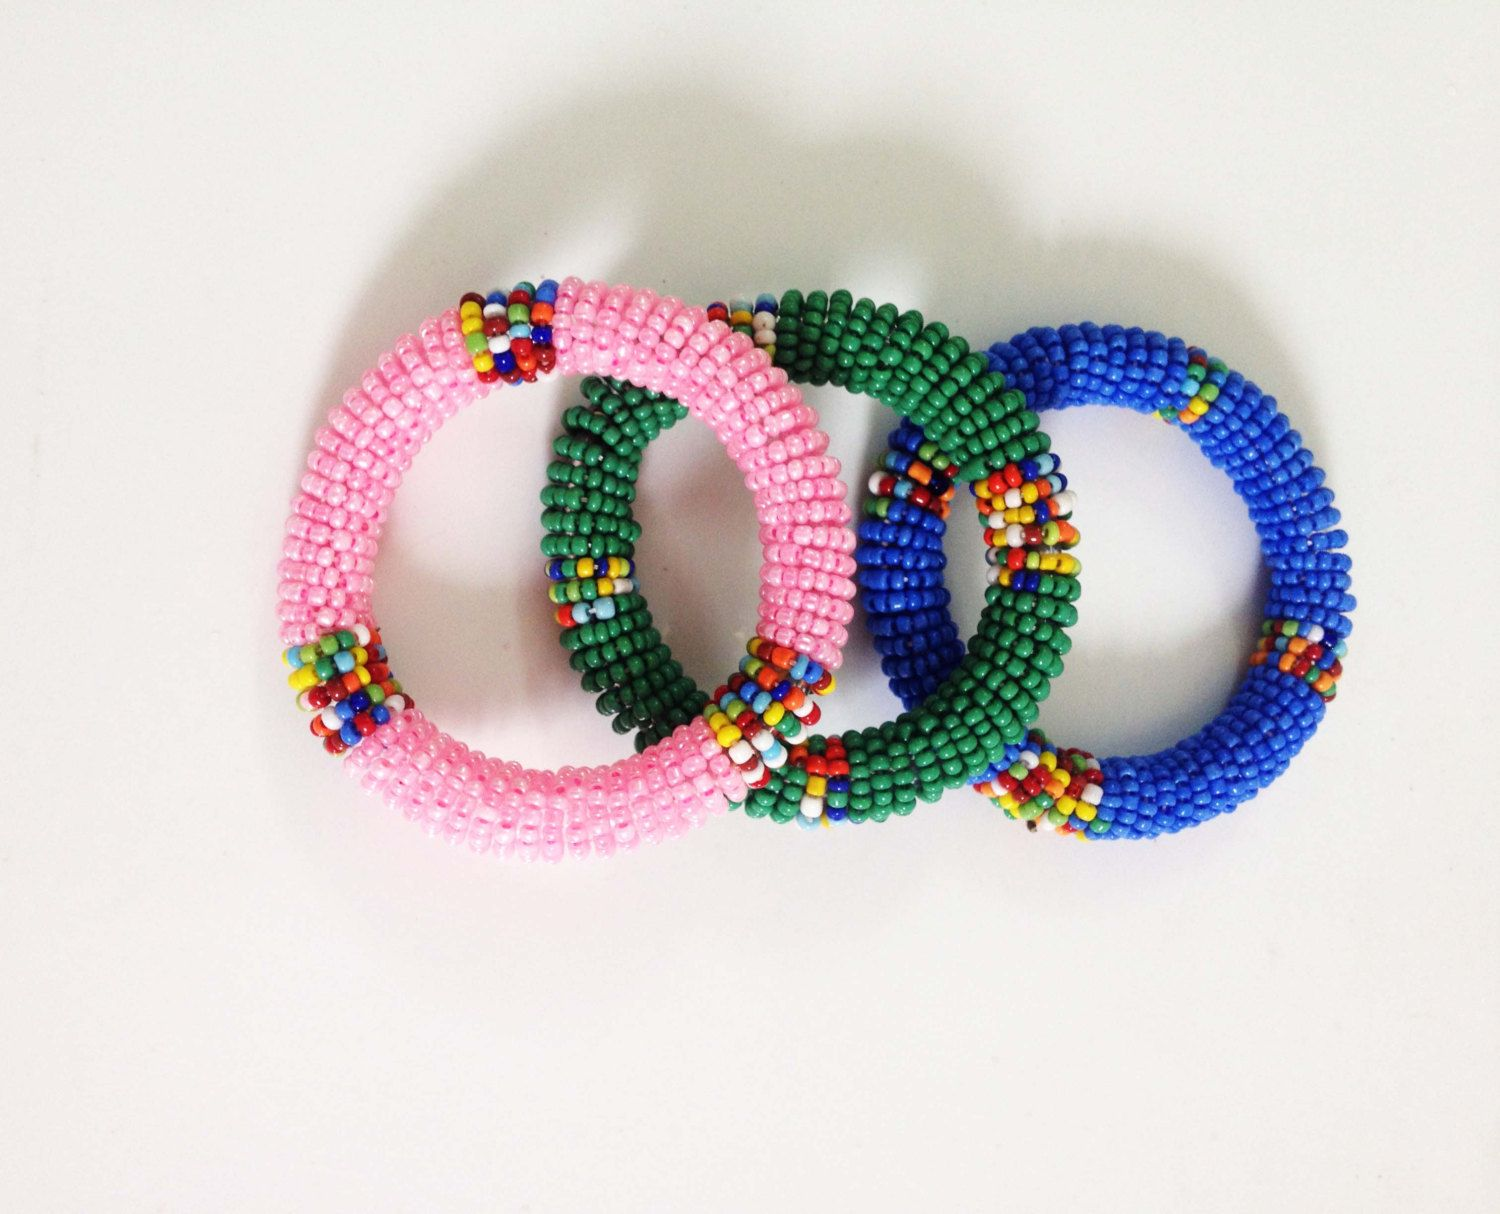 A set of Pink, Green and Blue Beaded, Roll-up African Bracelets for Kids by SipsHouseofDesign on Etsy